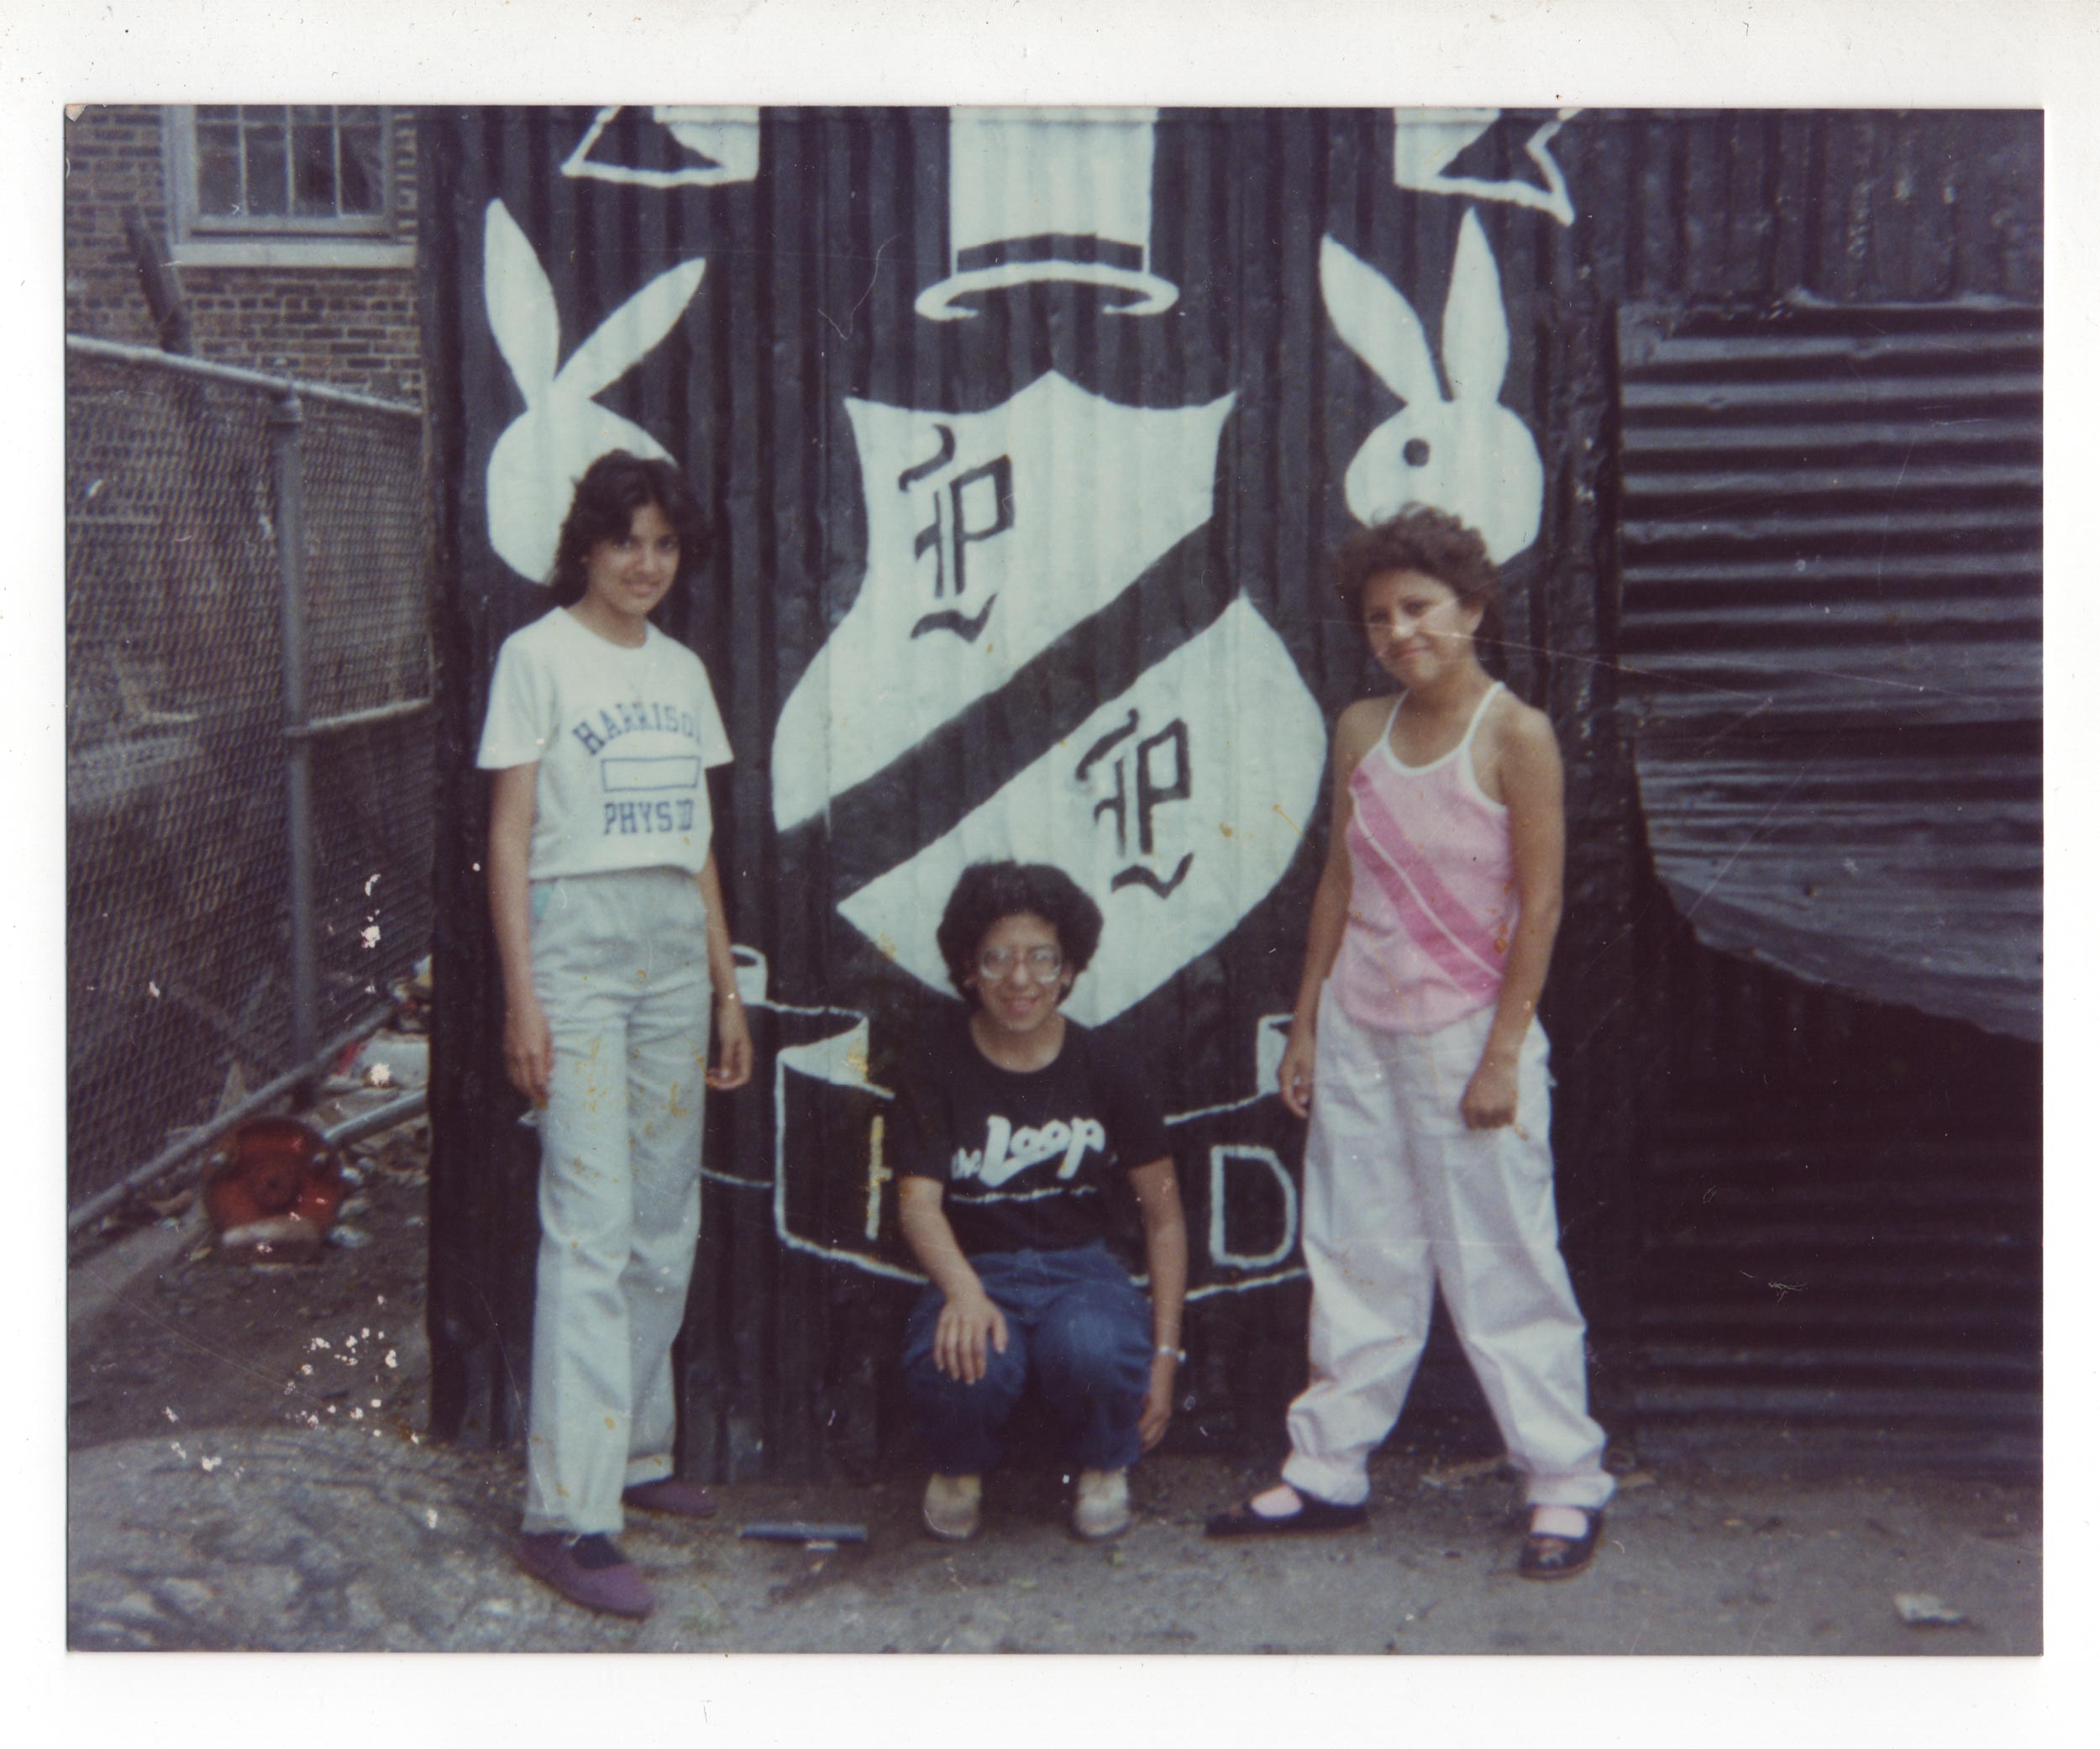 The untold stories of Chicago's tough-as-hell girl gangs, from a woman who lived it all